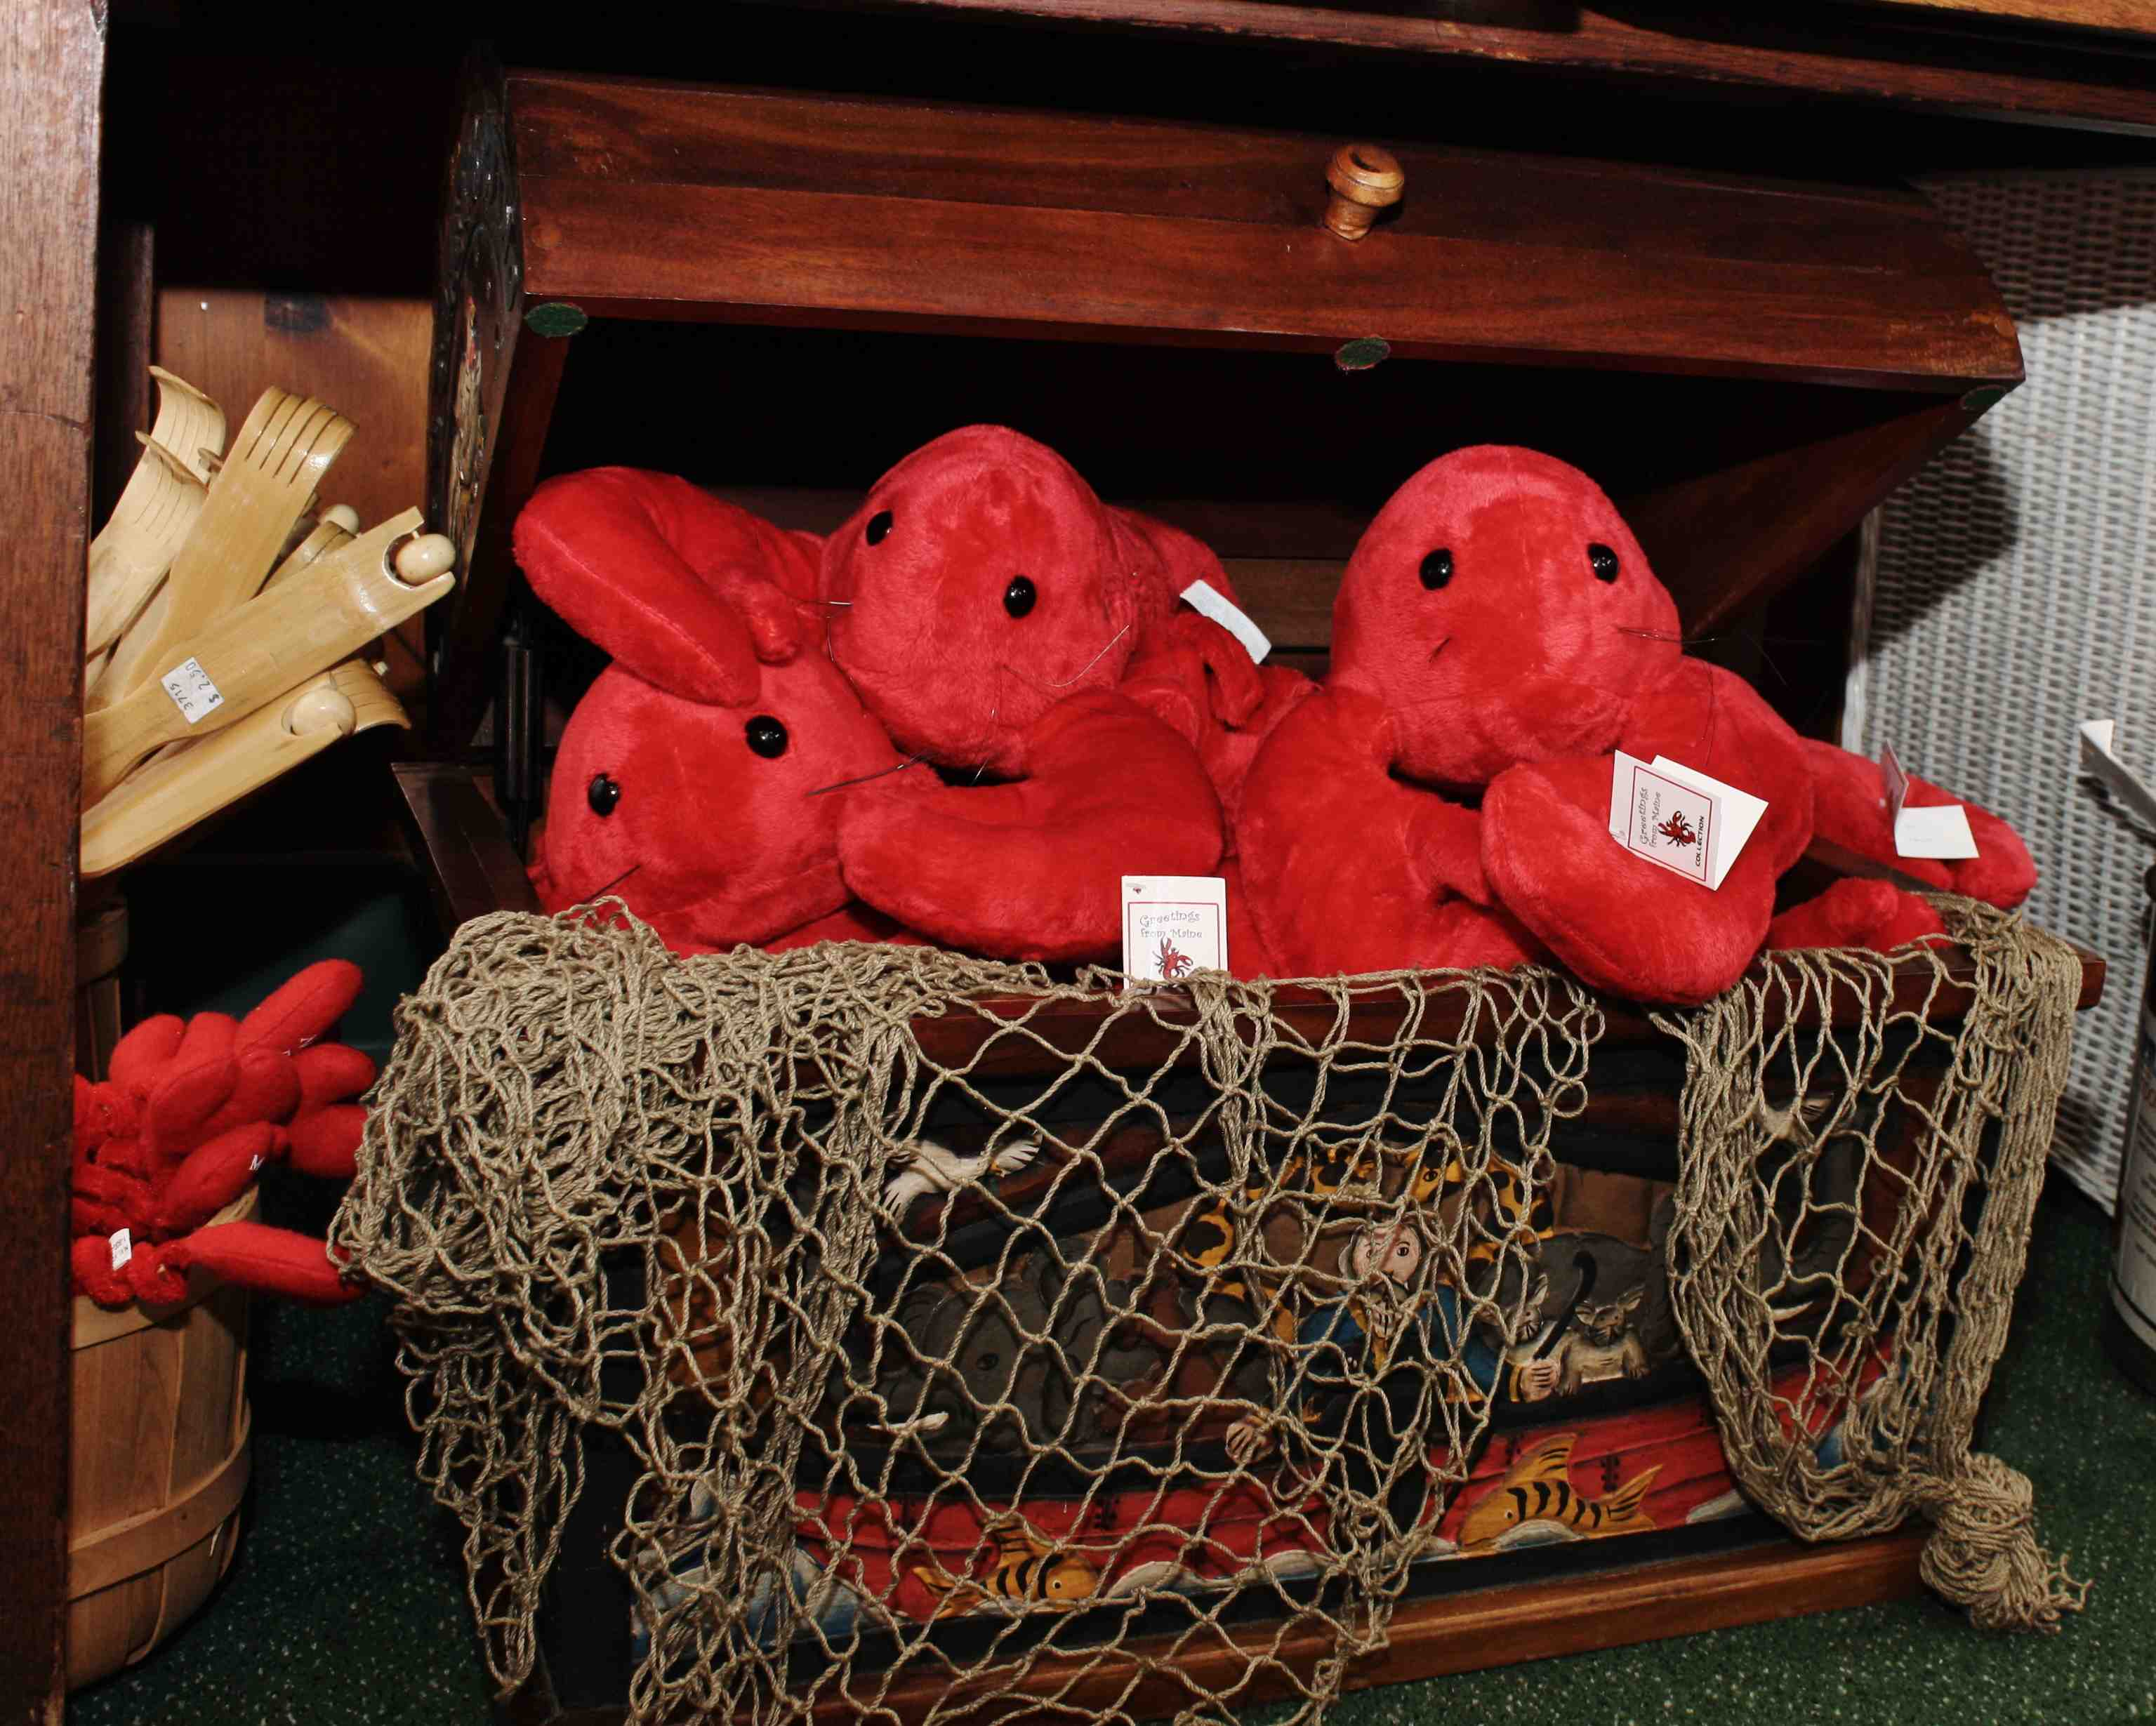 Plush lobster dolls for sale at Warren's Lobster House in Kittery, Maine